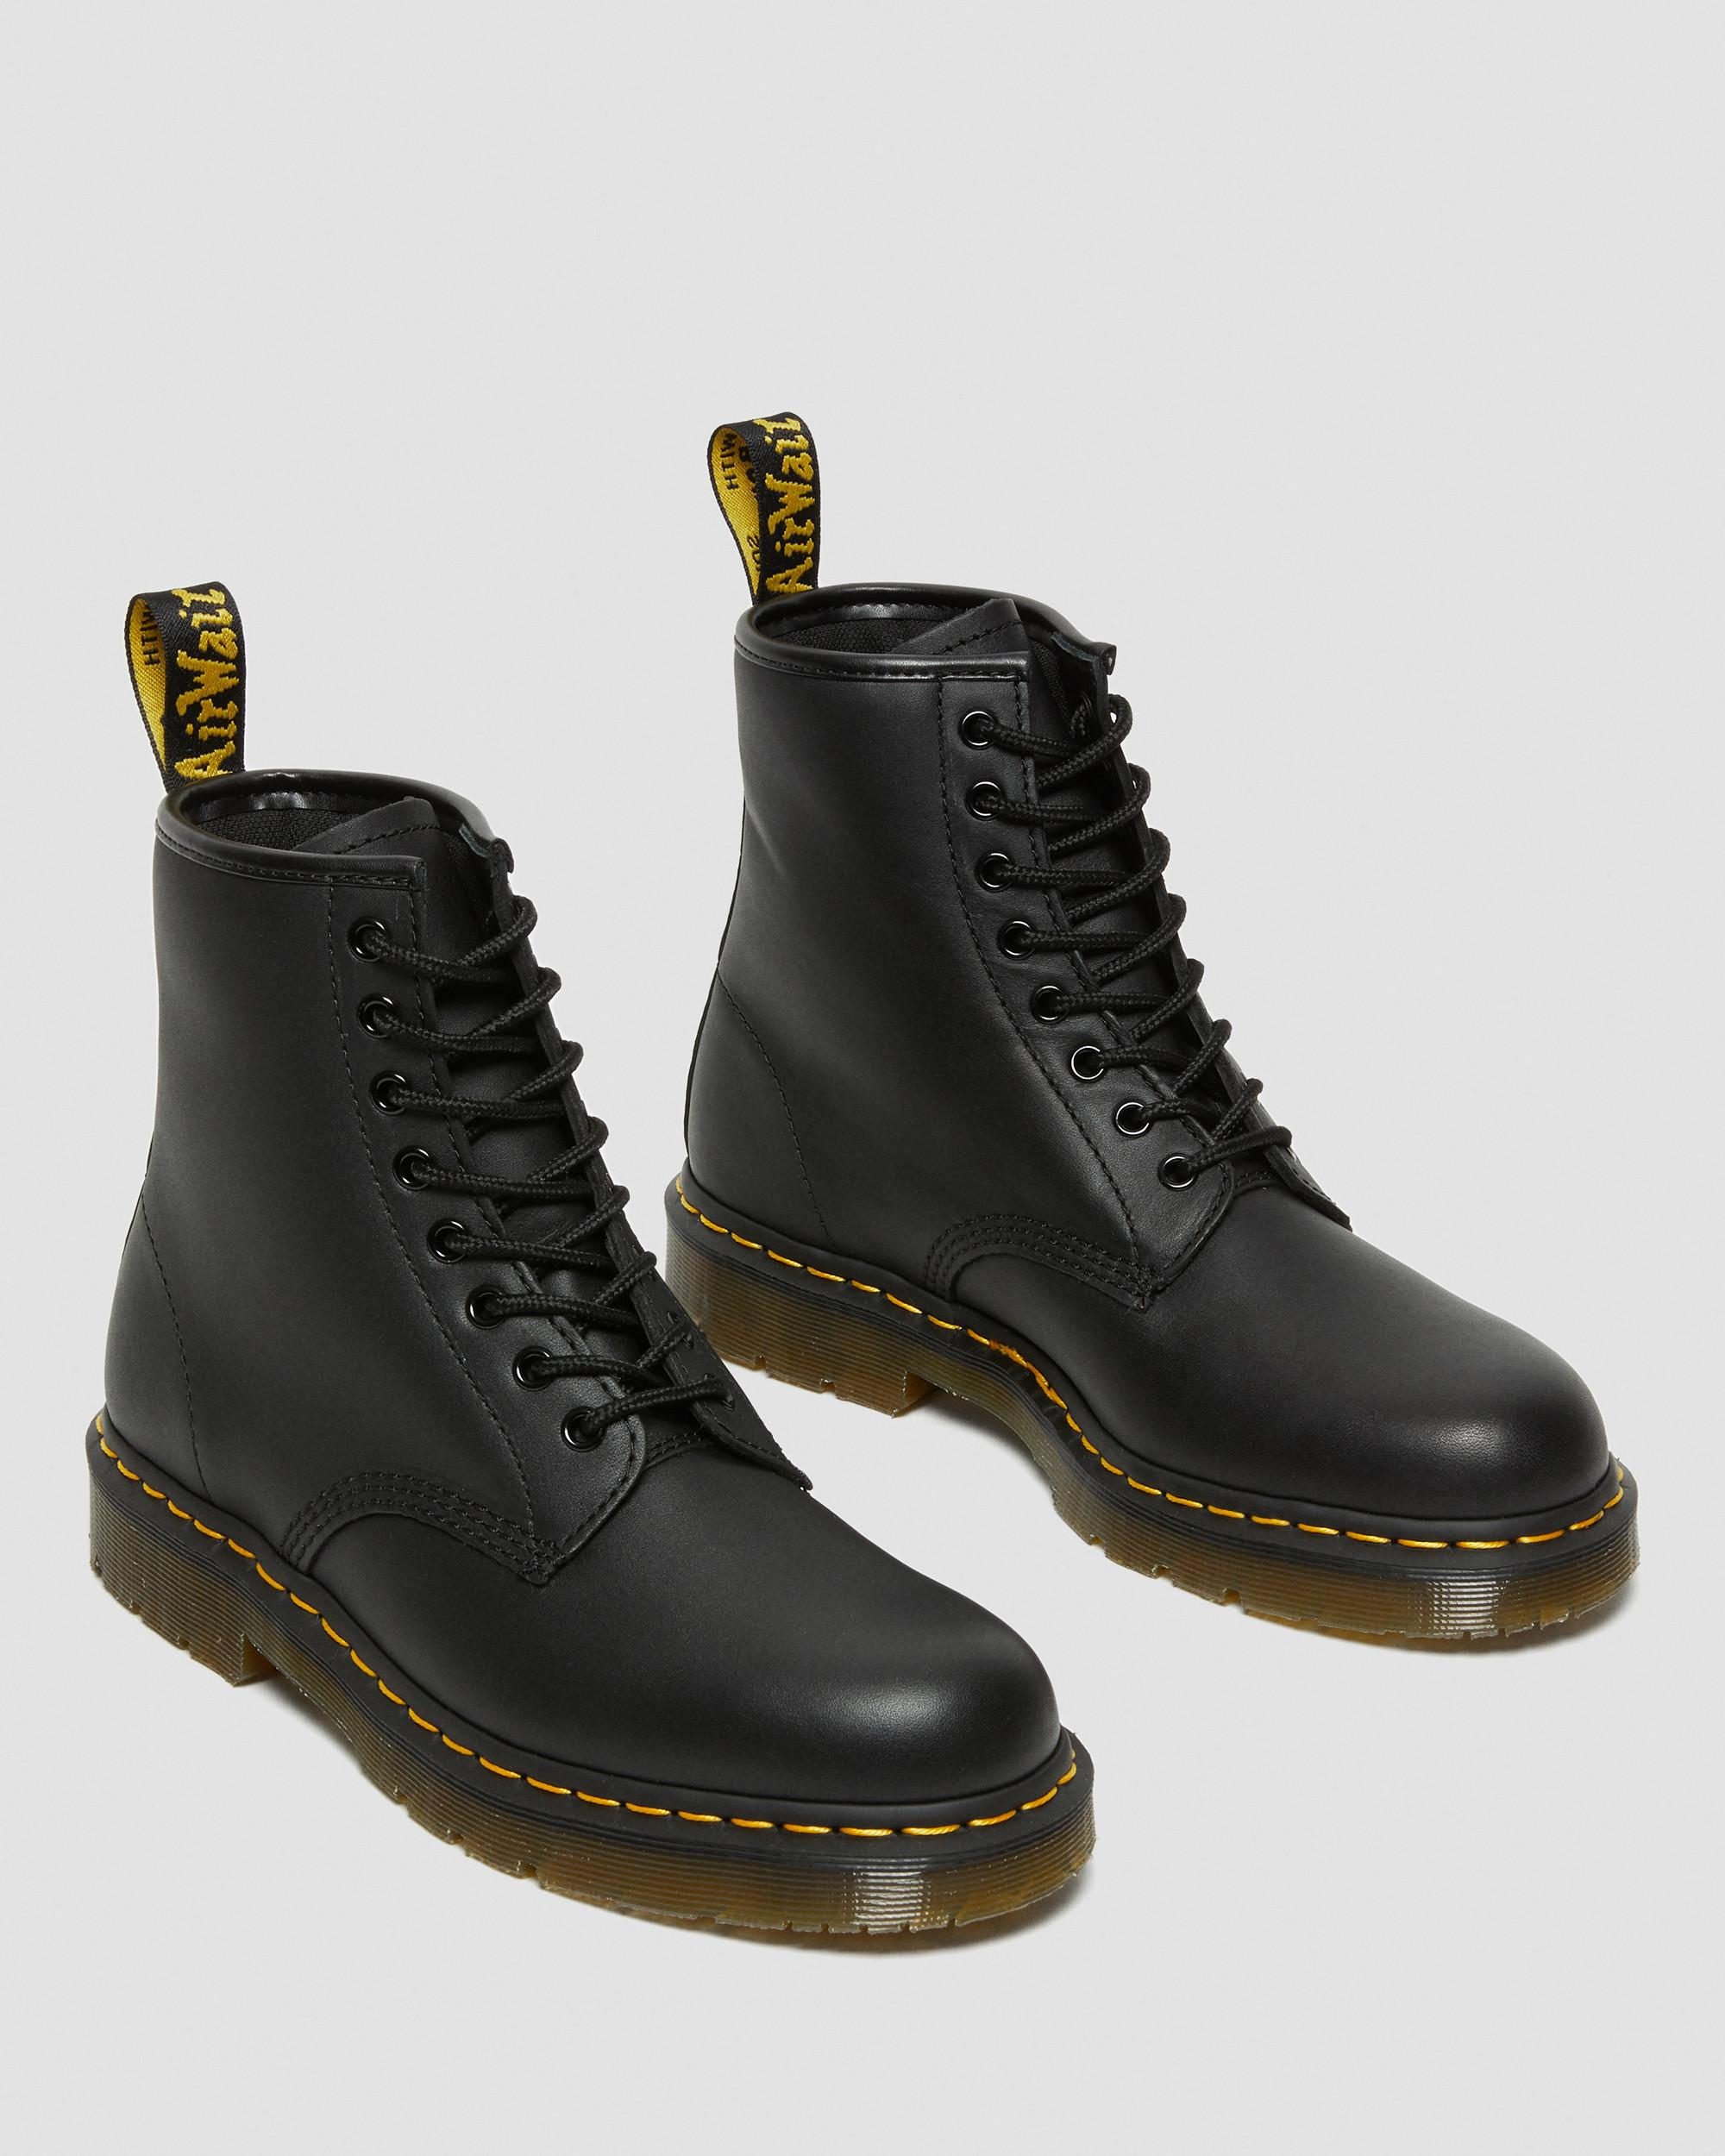 1460 SLIP RESISTANT LEATHER ANKLE BOOTS